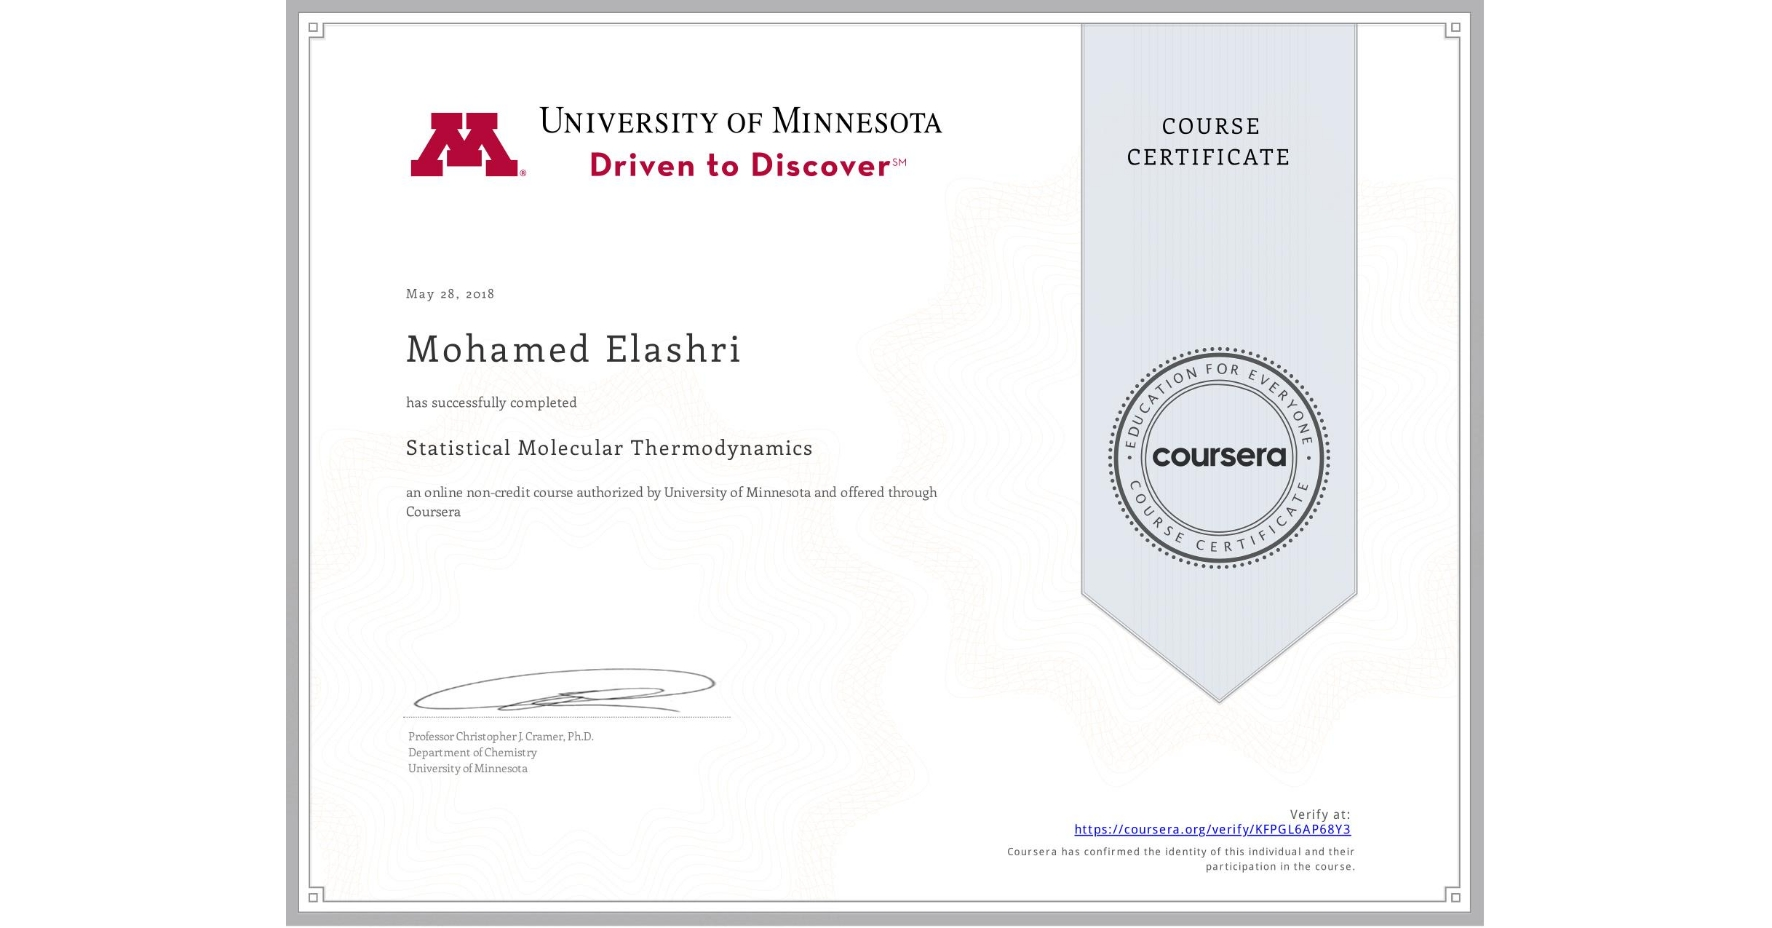 View certificate for Mohamed Elashri, Statistical Molecular Thermodynamics, an online non-credit course authorized by University of Minnesota and offered through Coursera